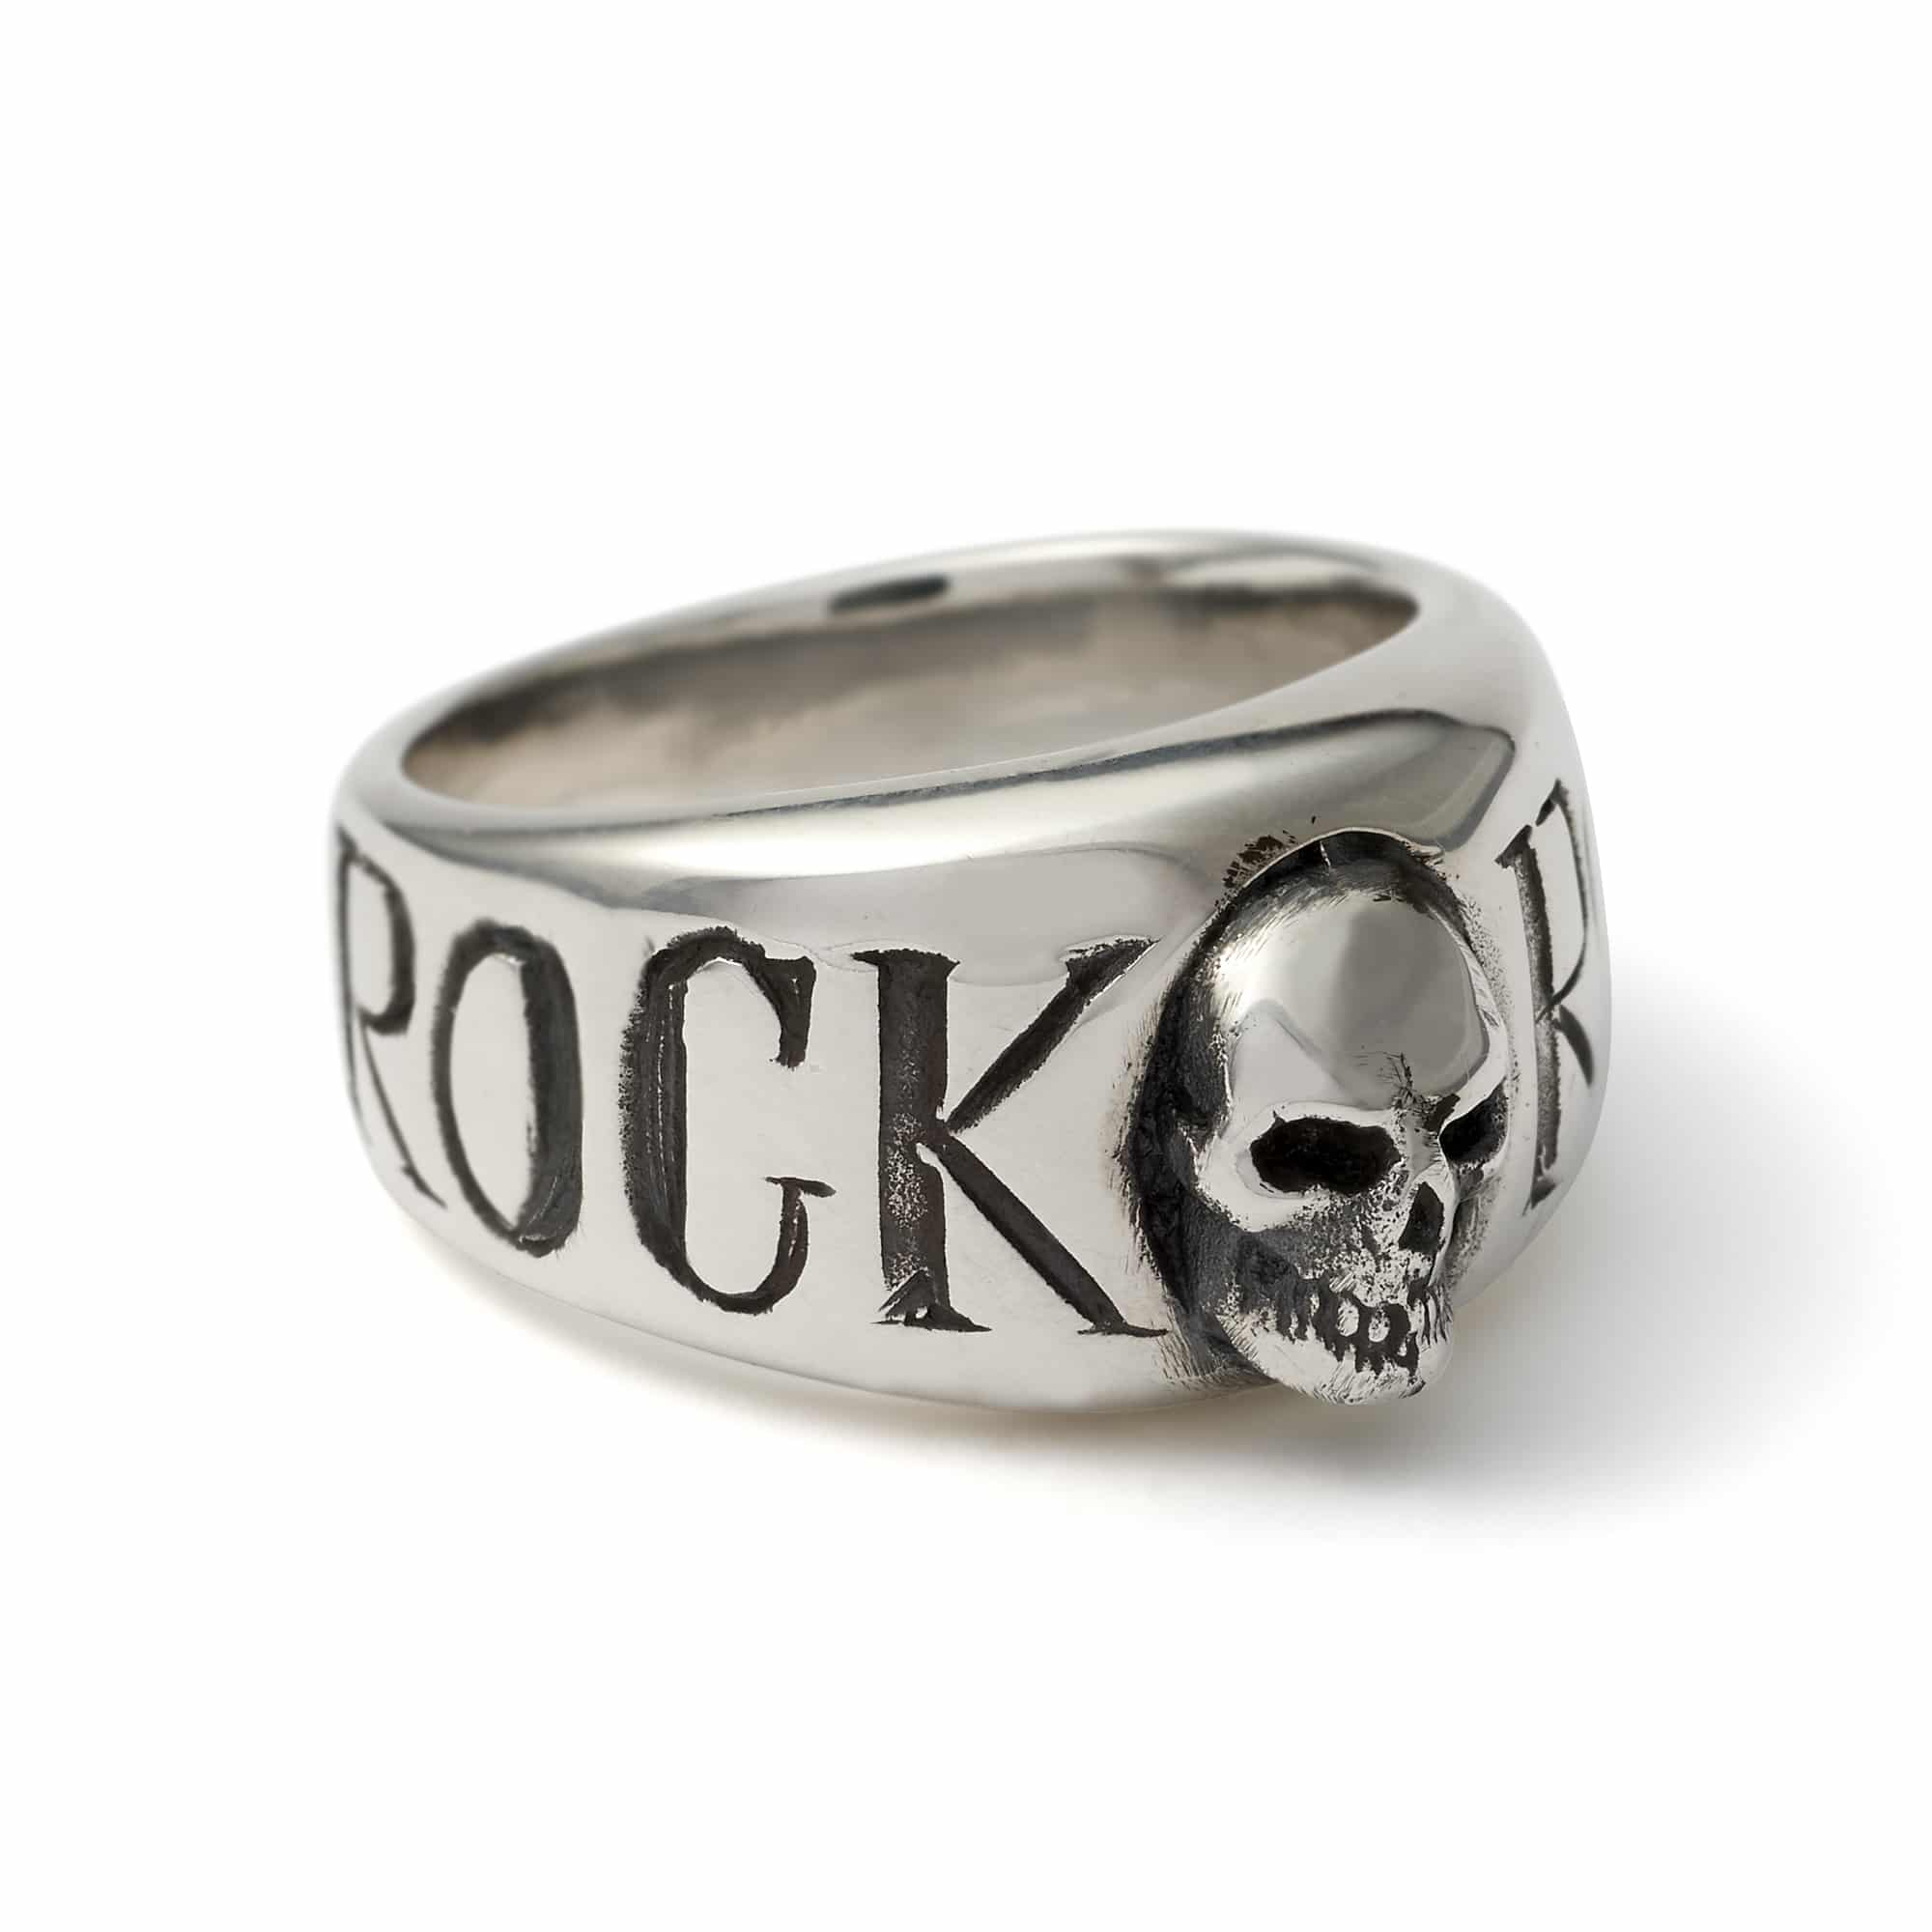 Rock 'n' Roll Skull Ring – The Great Frog